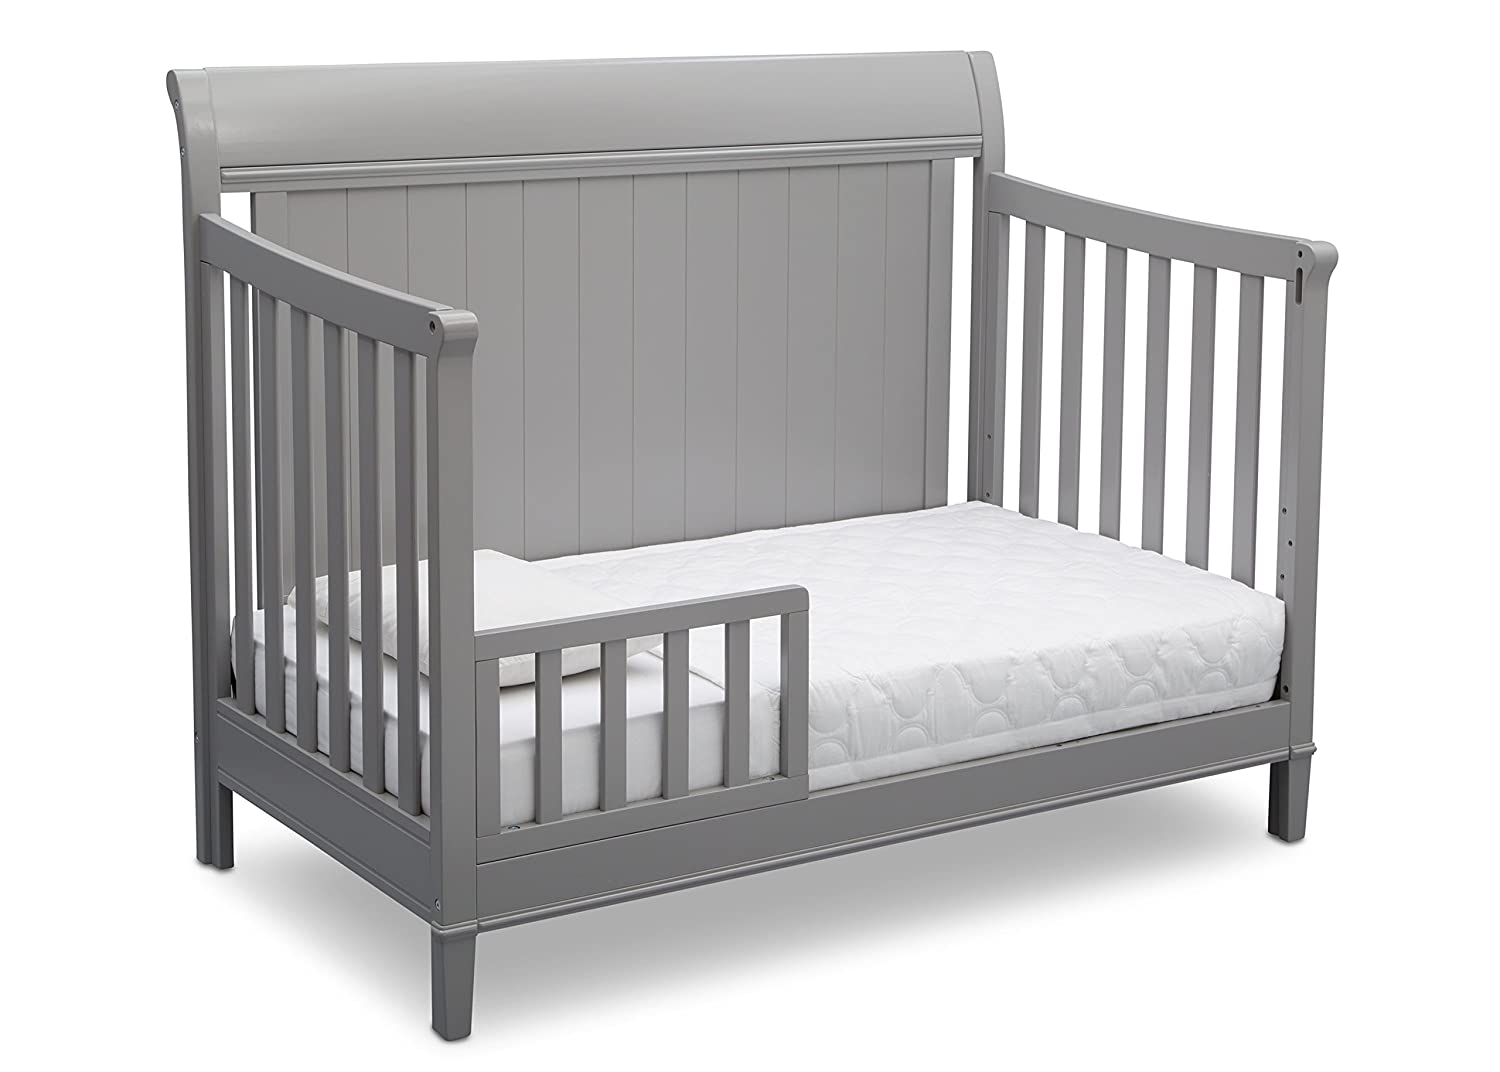 63967ef4fc1 Amazon.com   Delta Children New Haven 4-in-1 Convertible Baby Crib ...